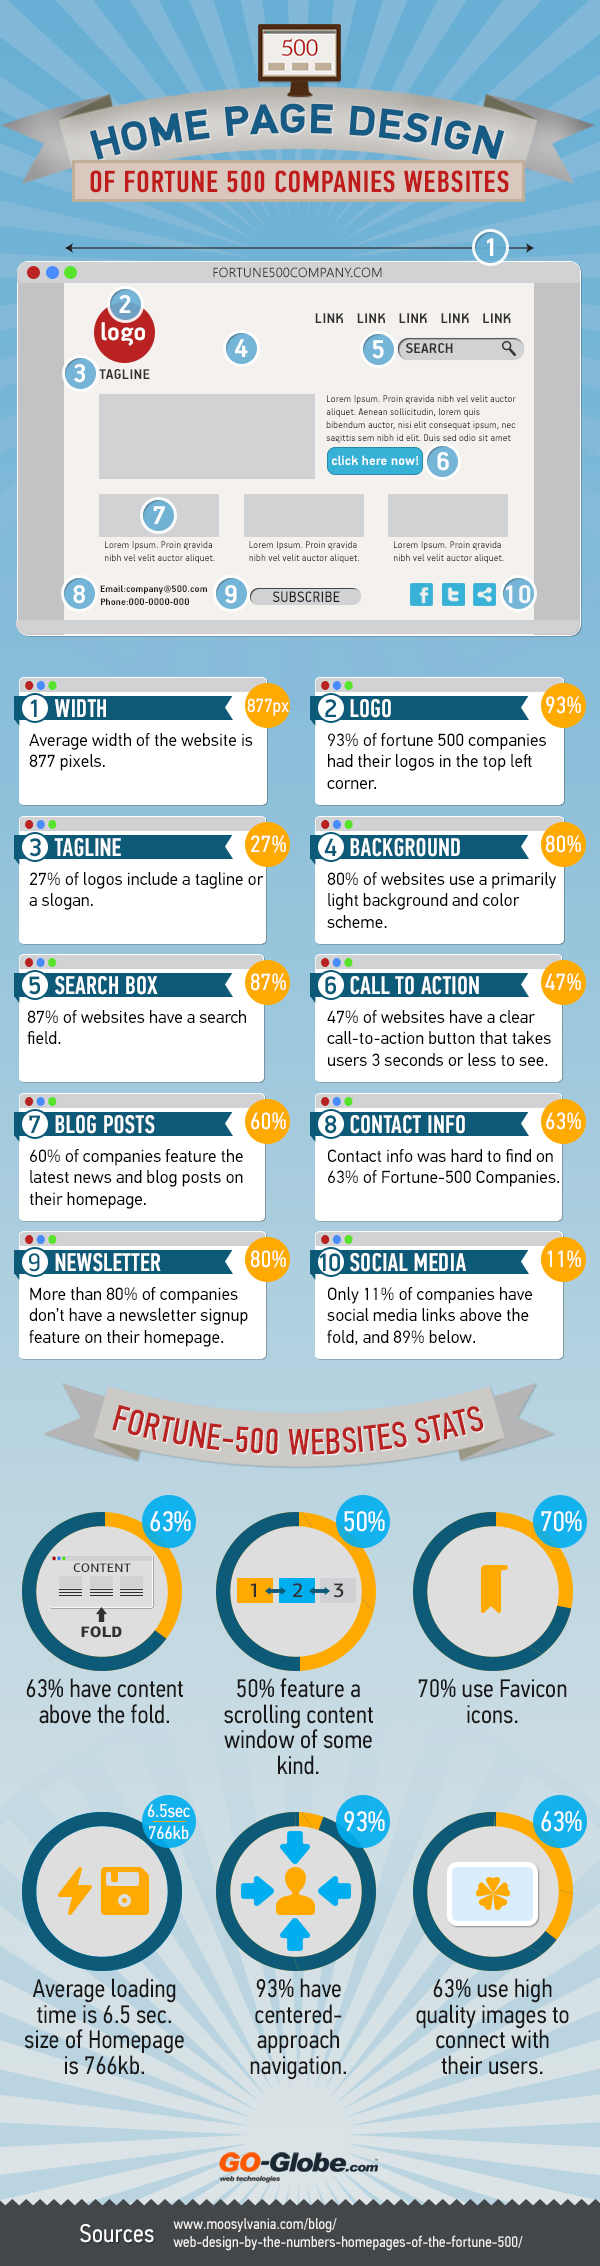 Not Sure How Your Home Page Should Look Here Are 10 Things to Include